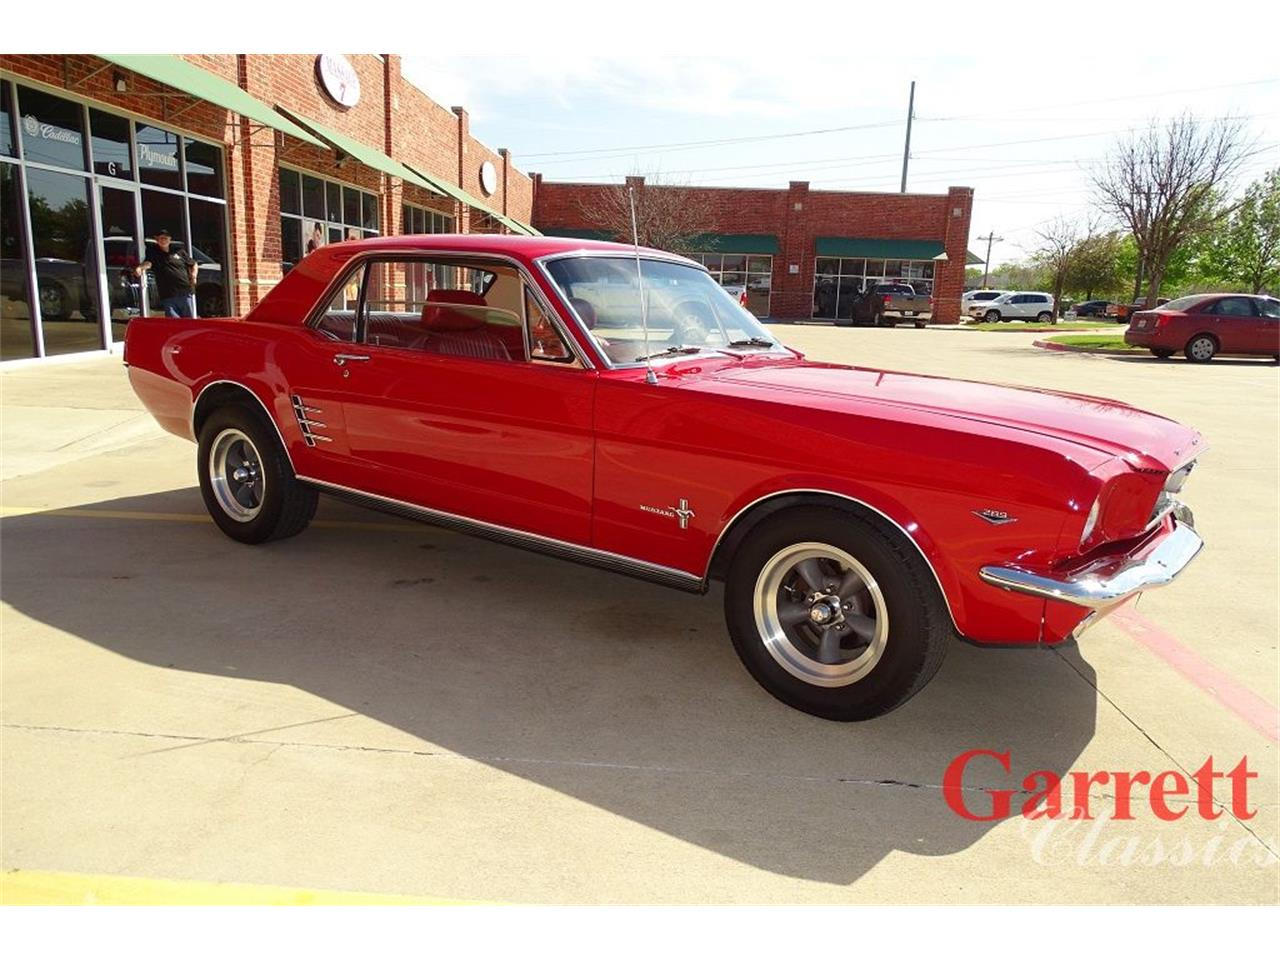 Ford Mustang V8 pony pack 1966 prix tout compris 1966